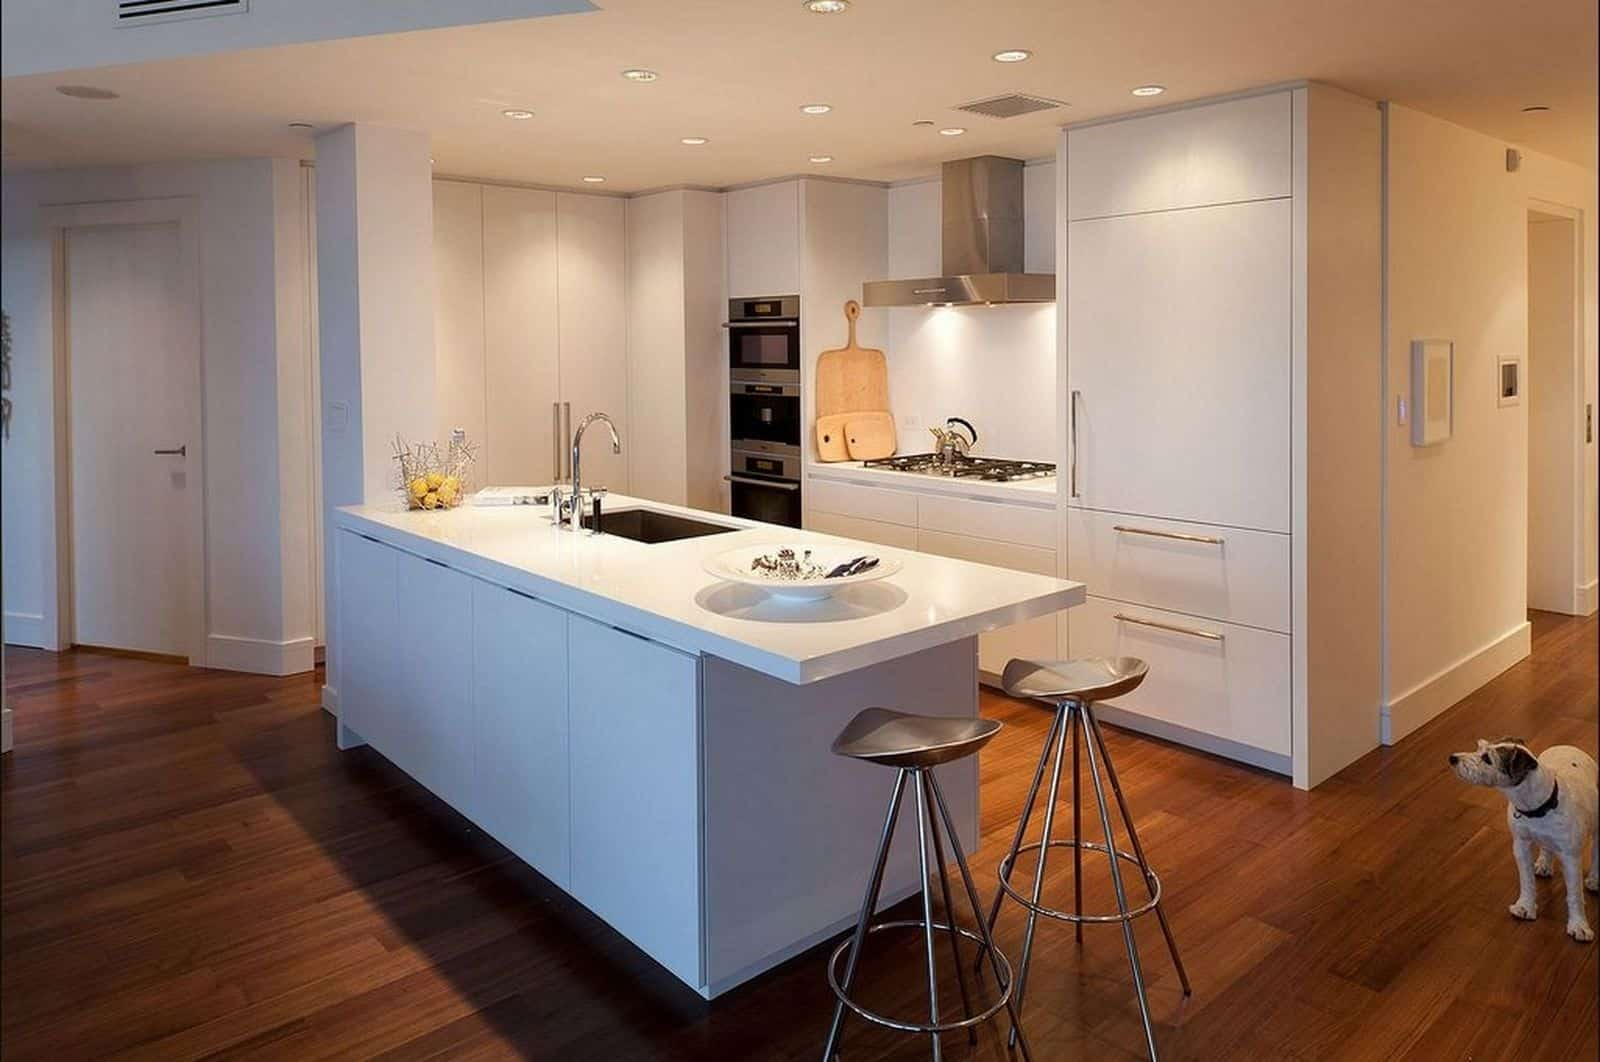 Kitchen Islands Add Beauty Function And Value To The: 24 Most Creative Kitchen Island Ideas -DesignBump